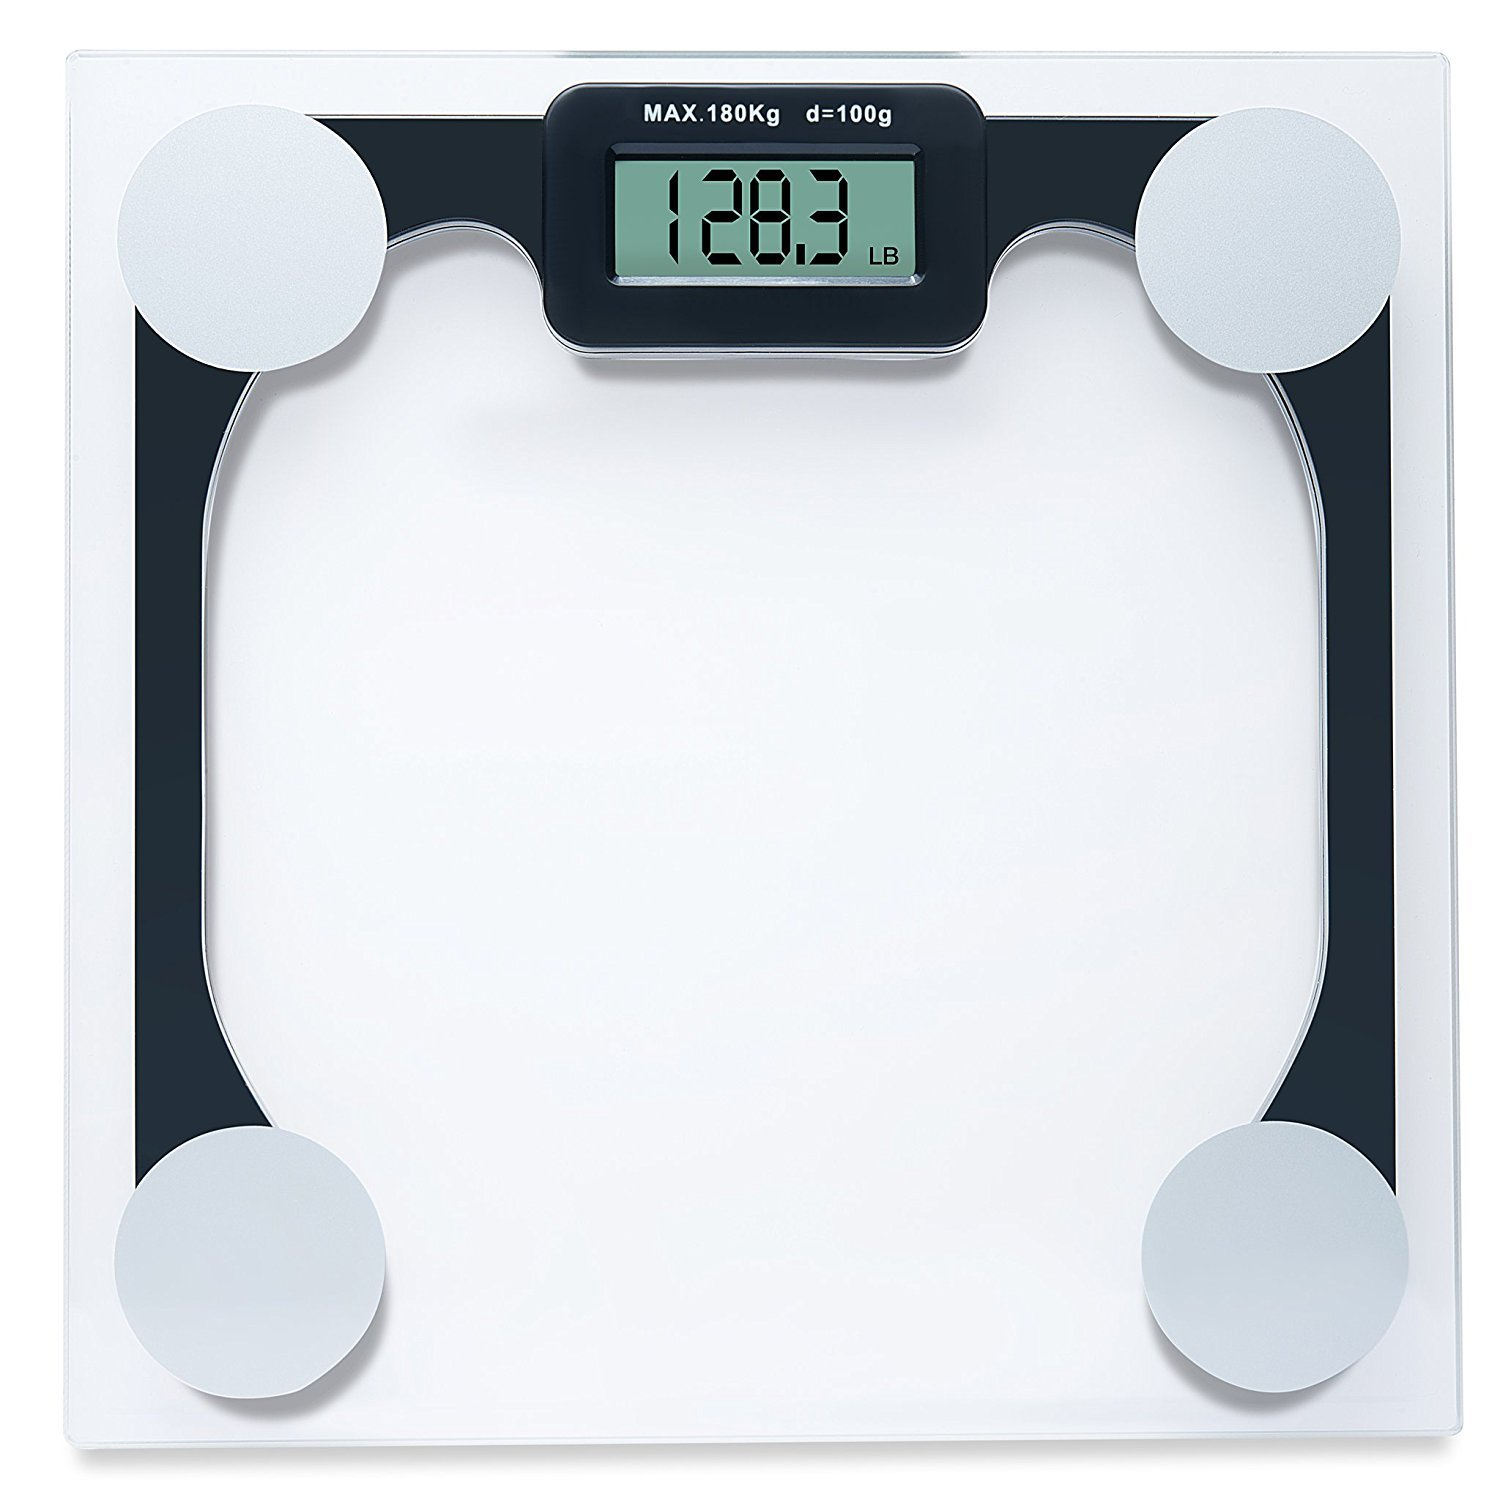 Weighing Scale Modern Digital Bathroom Scales 400 Lb Capacity Weight Has Ebay